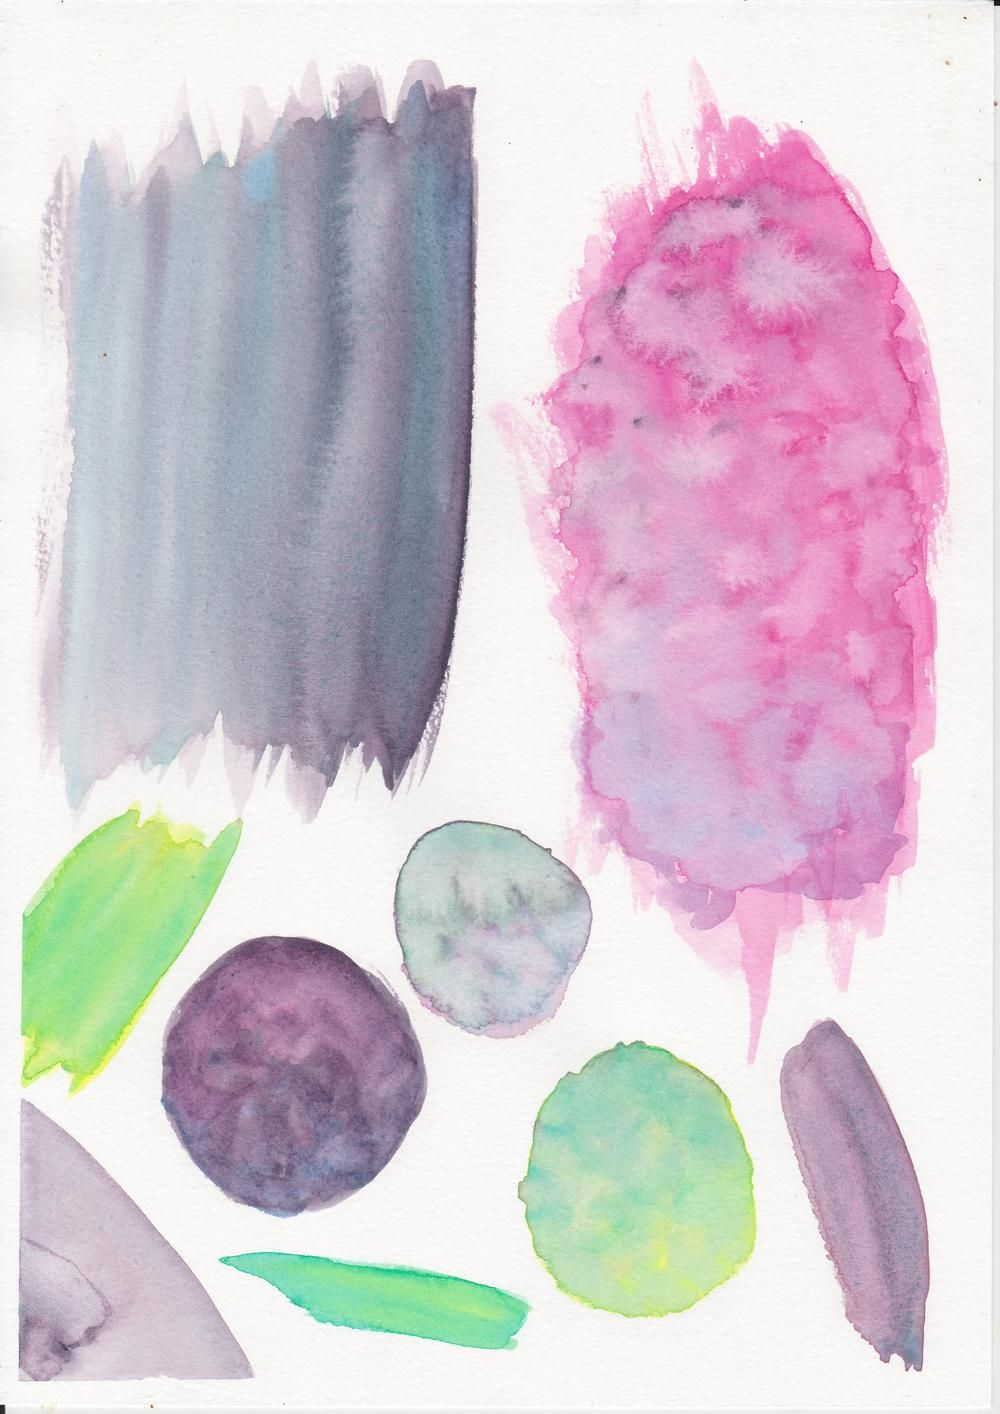 Watercolour Textures for use in branding - image 1 - student project